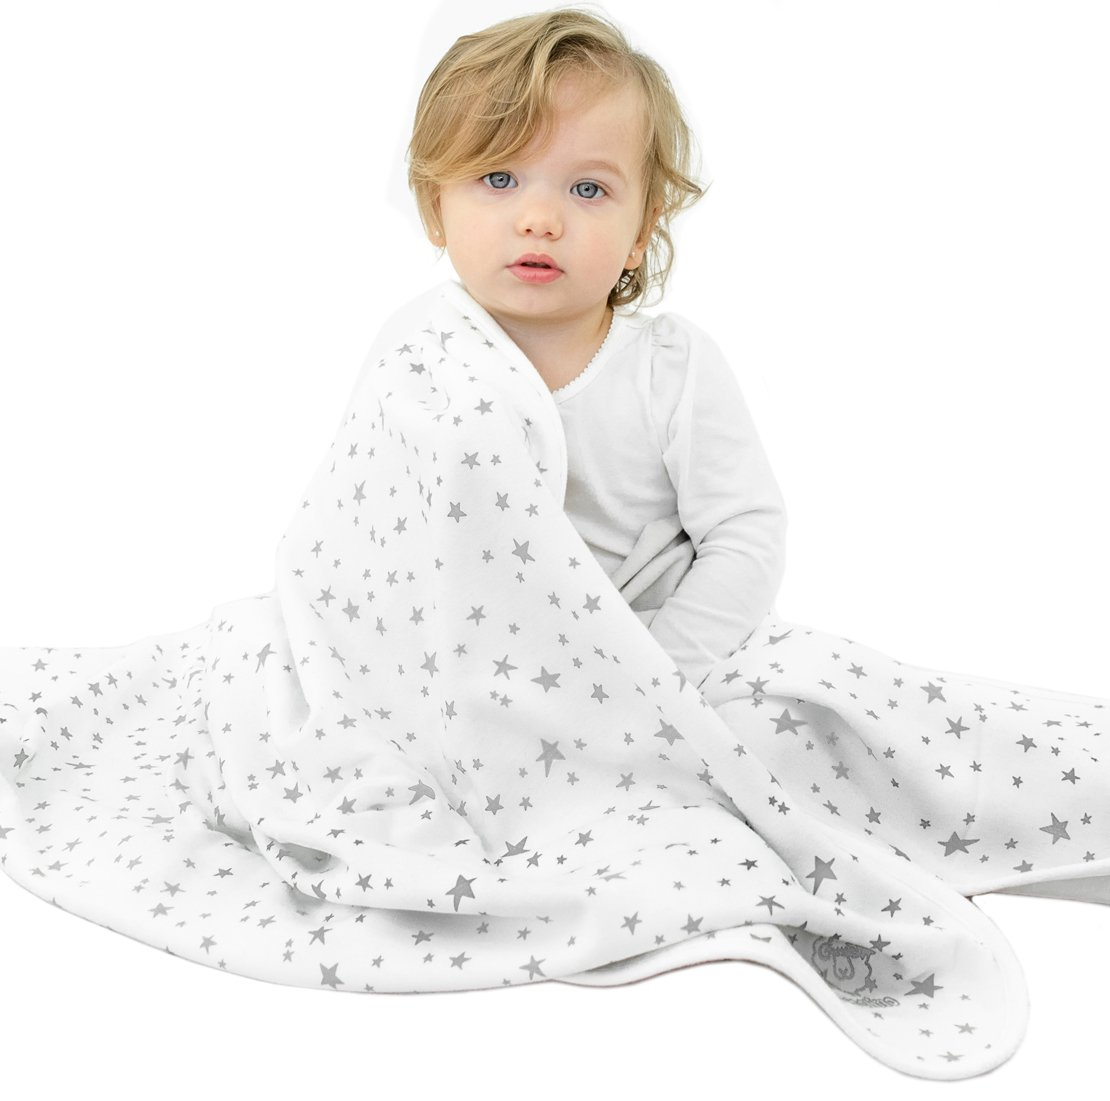 Baby Blanket for Crib or Stroller, Merino Wool Blanket, 40'' x 31.5'', Stars by Woolino (Image #1)